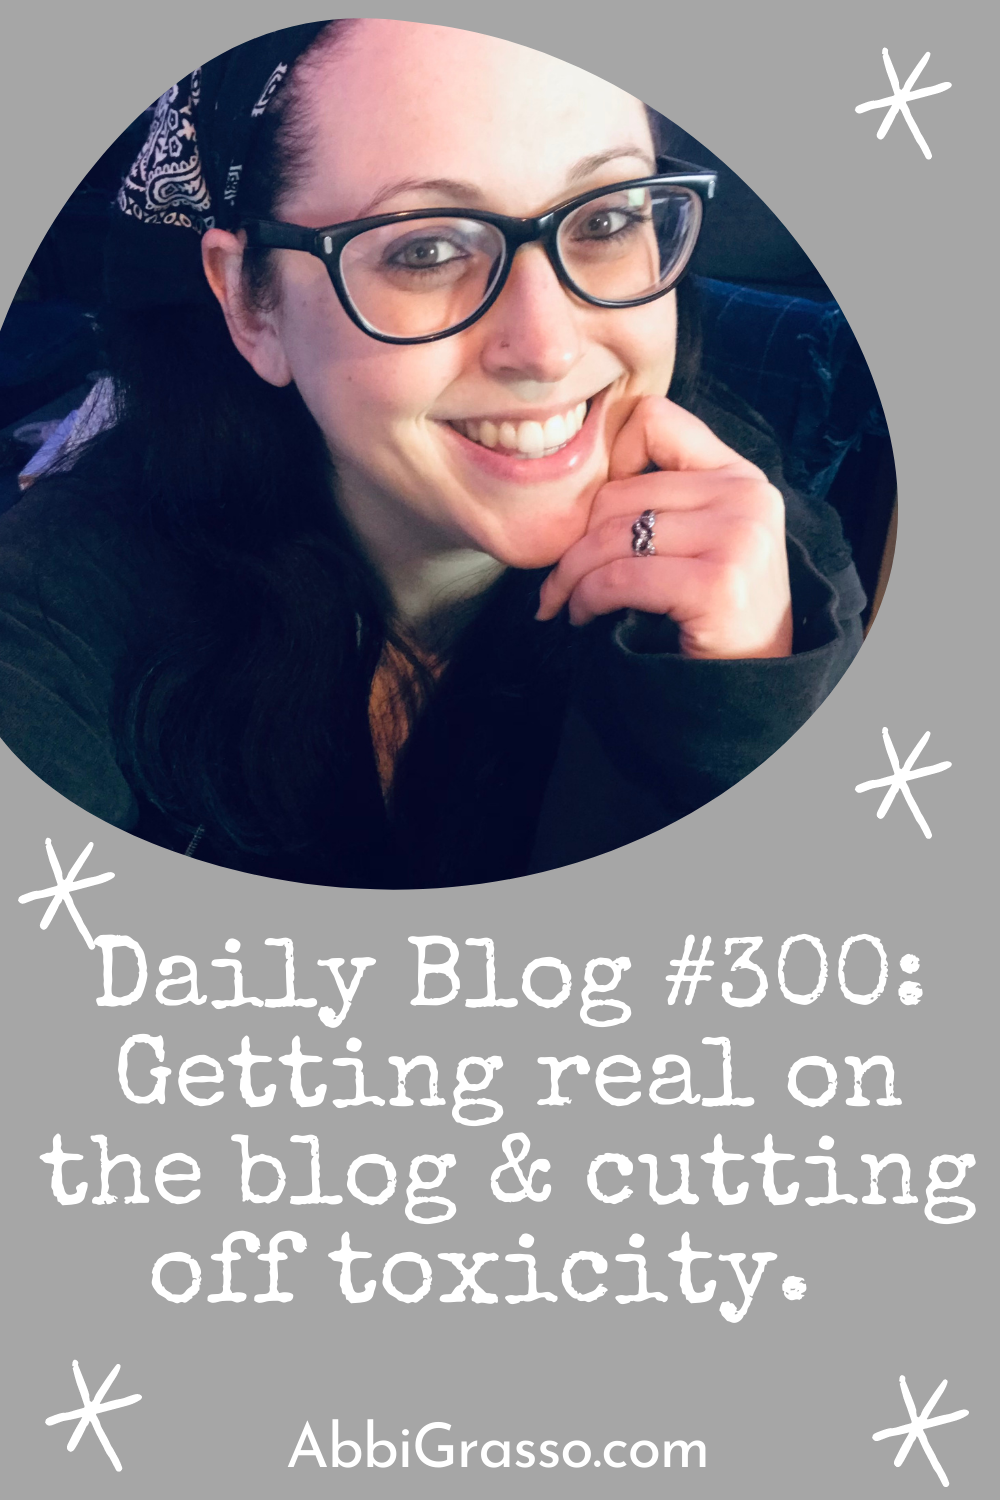 Daily Blog #300- Getting real on the blog and cutting off toxicity.